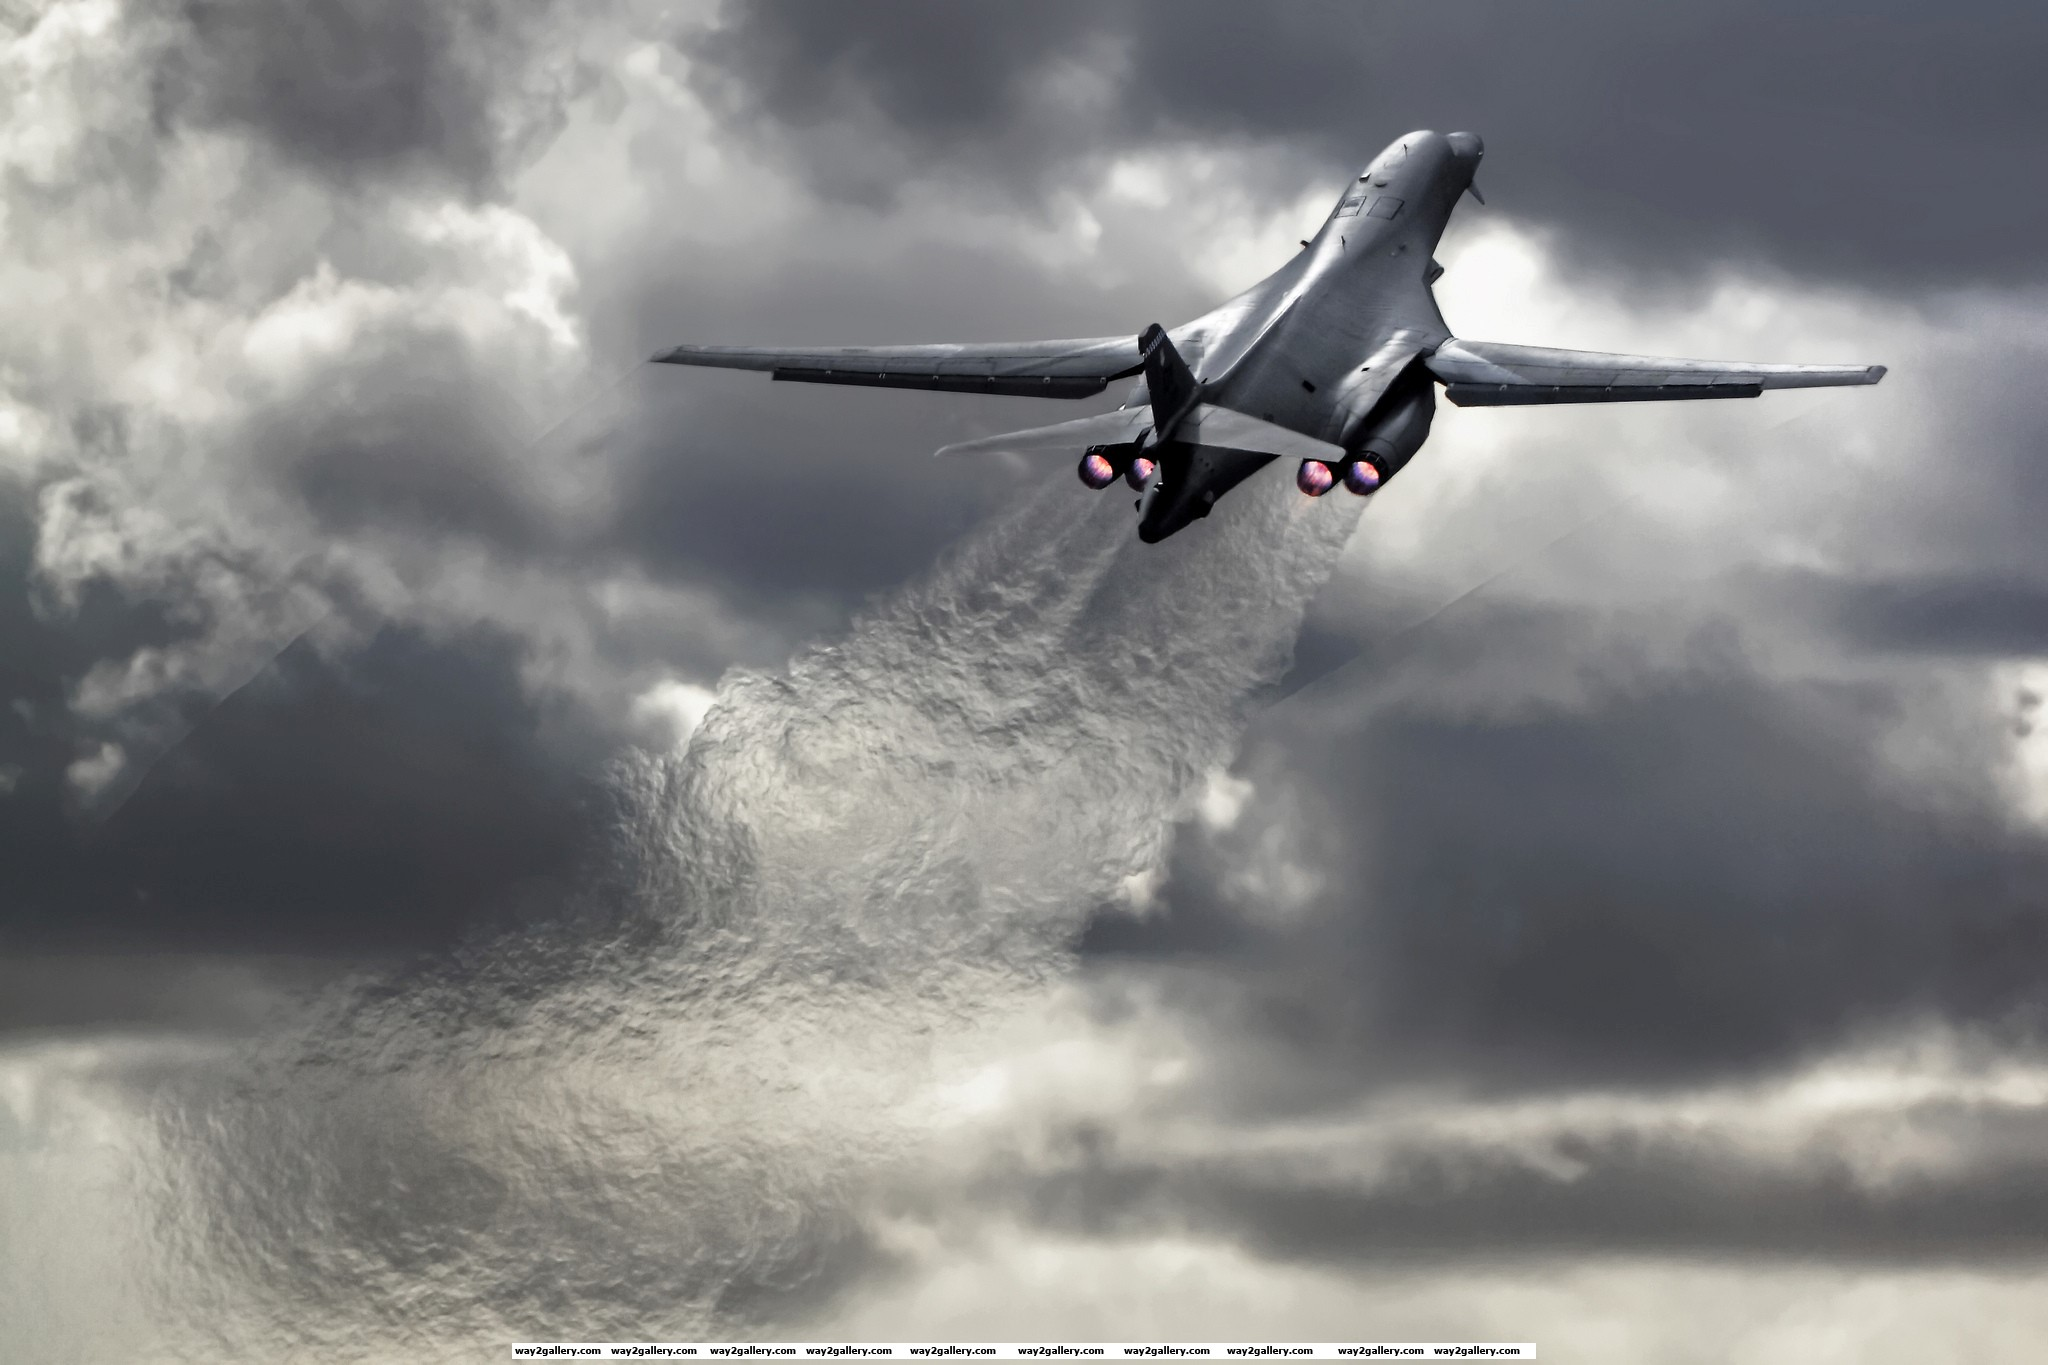 Awesome image of a b1 b lancer jet taking off from a us airbase